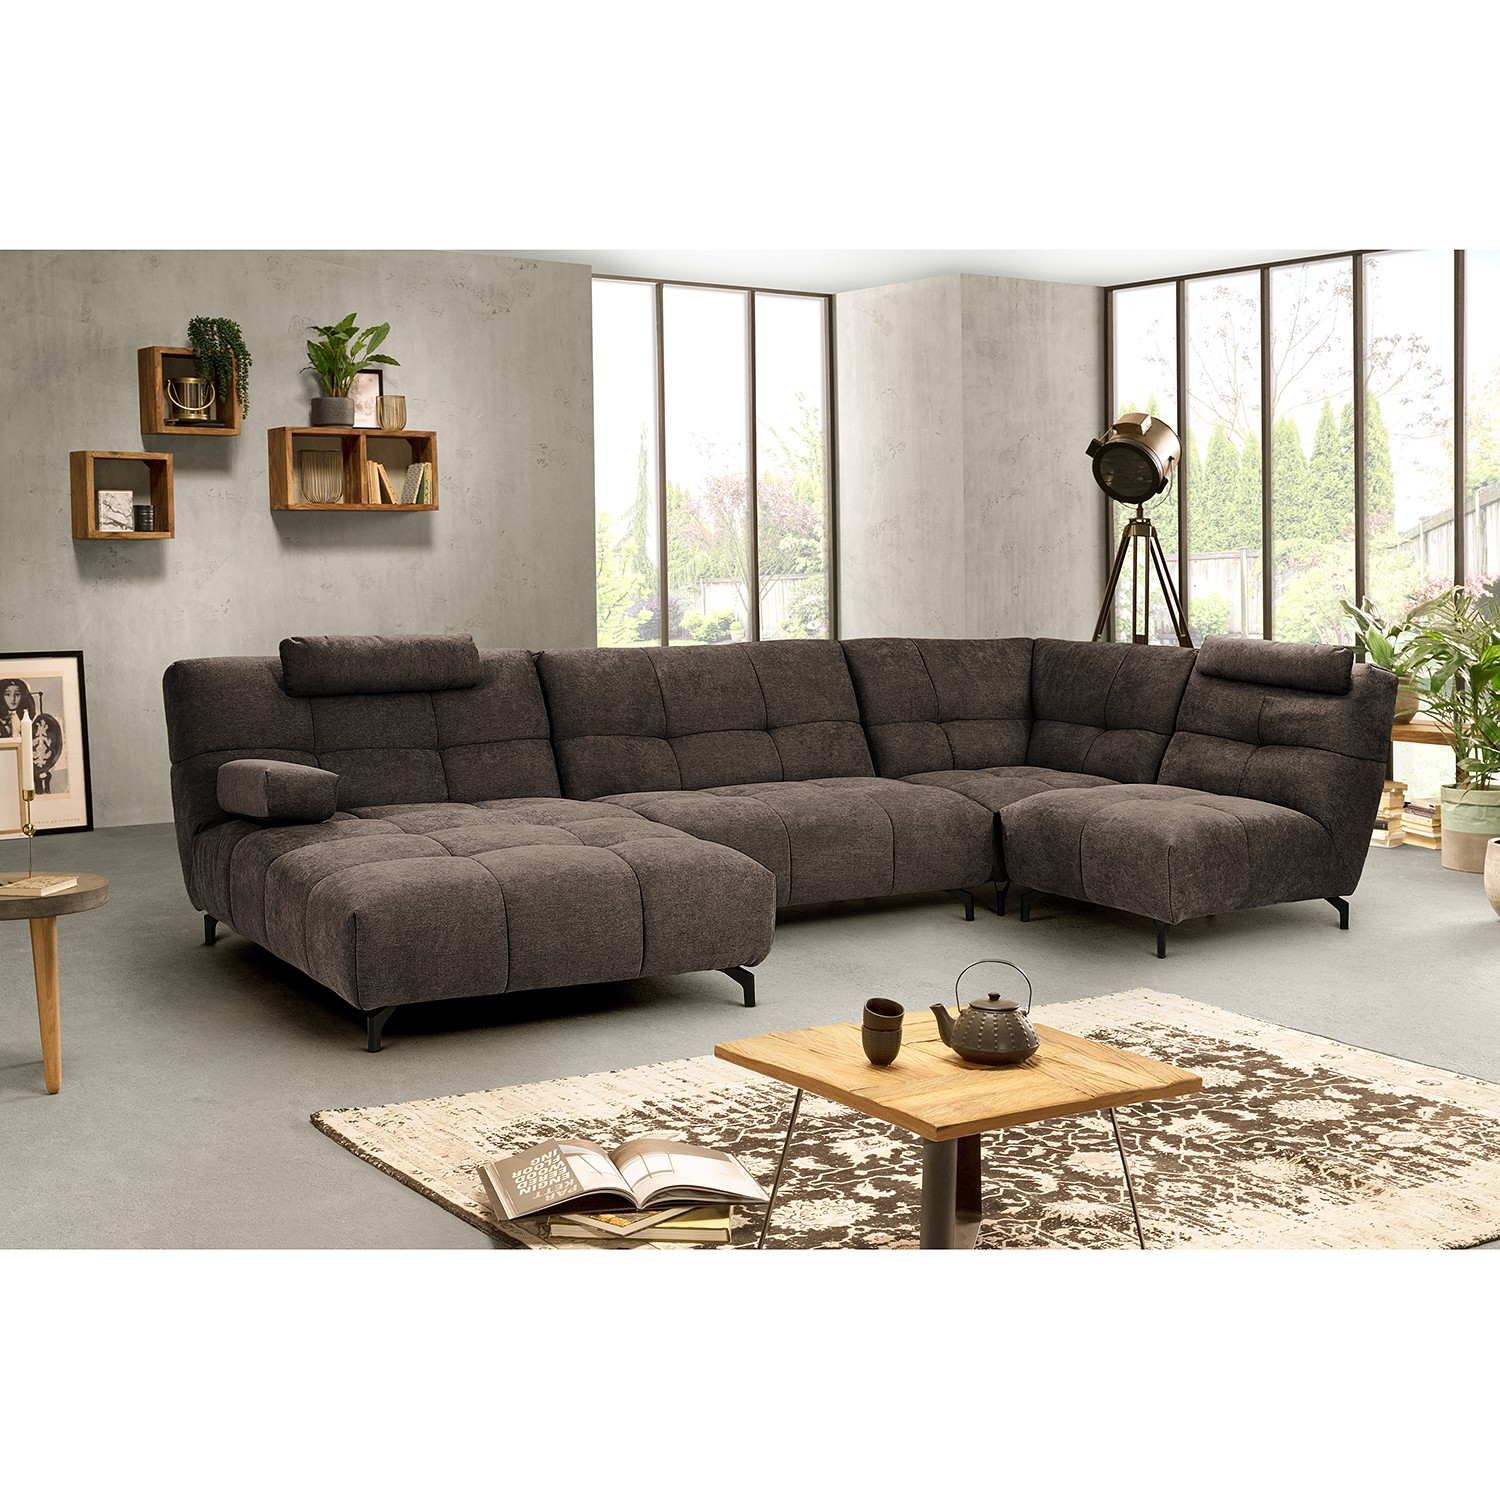 home24 Fredriks Sessel Bellmore Taupe Microfaser 80x88x105 cm